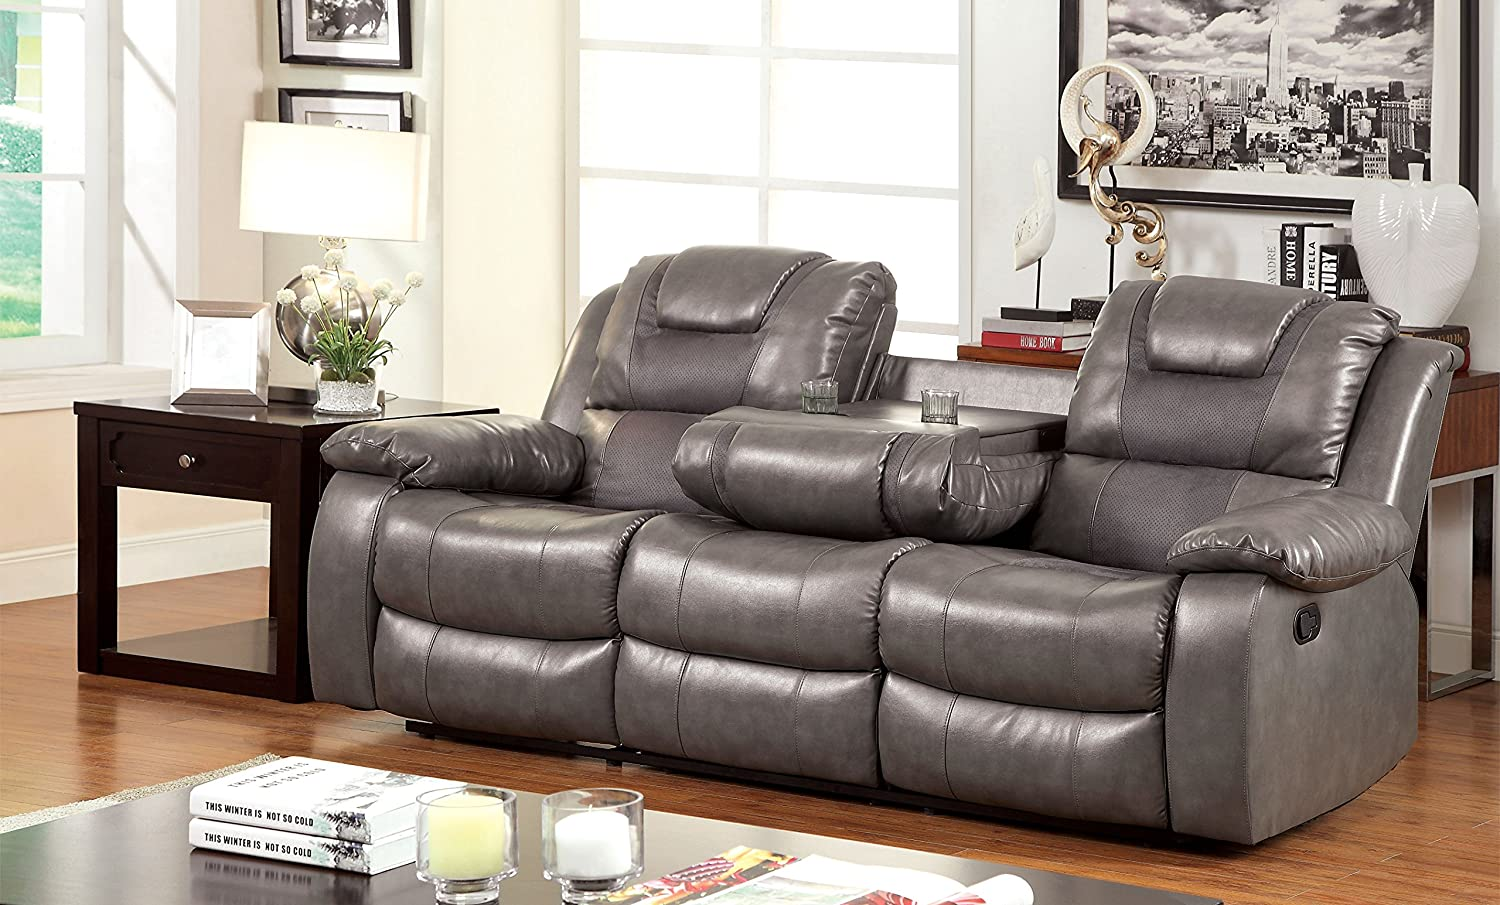 Furniture of America Steely 2-Recliner Sofa